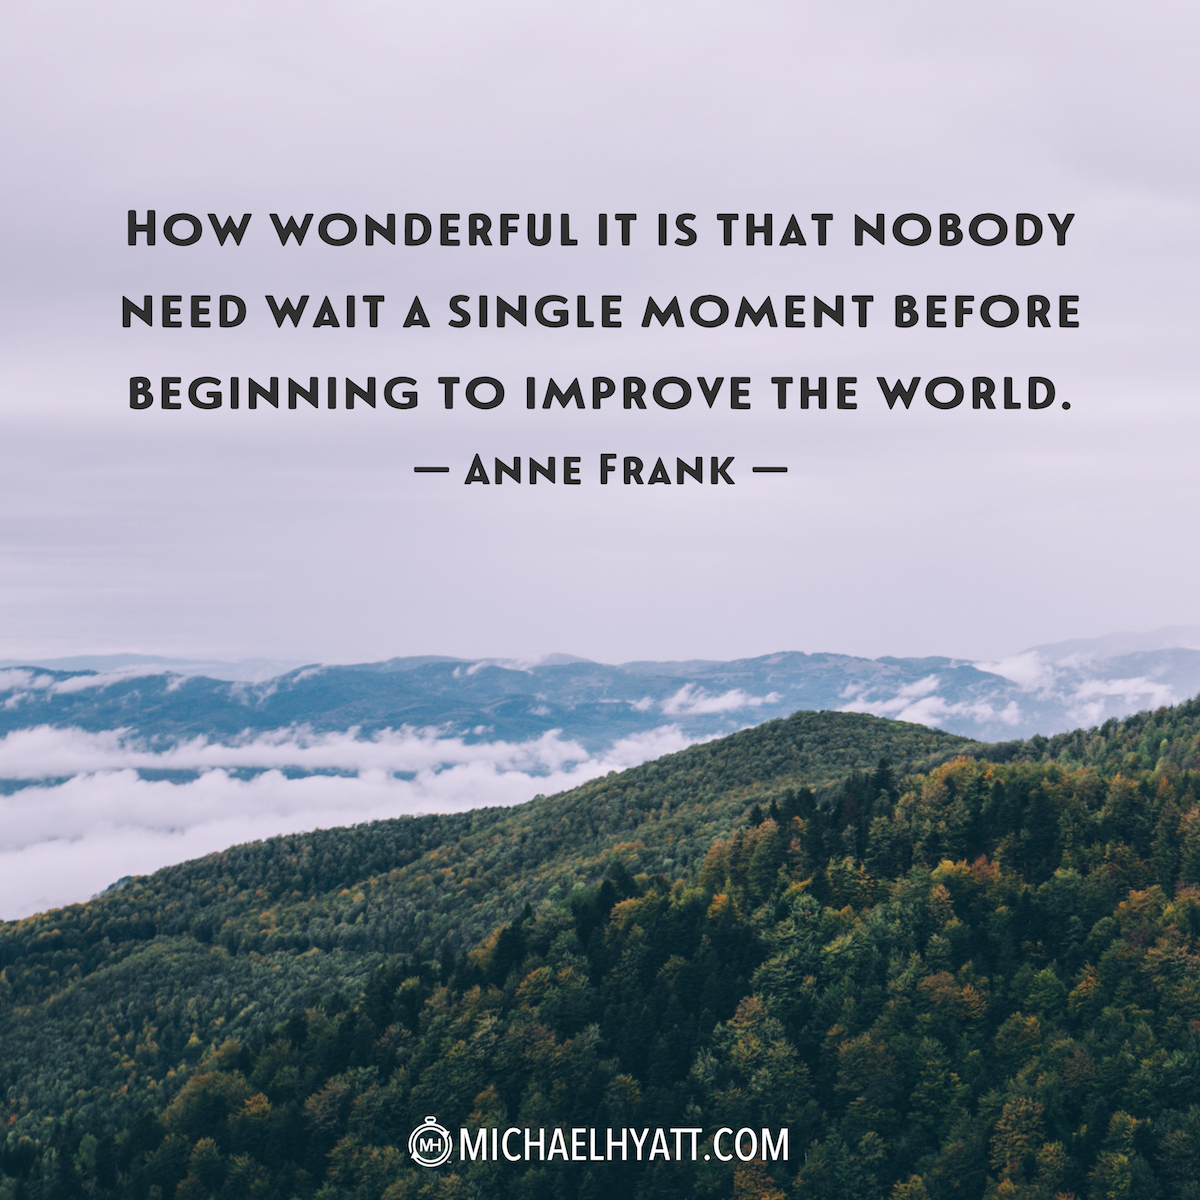 """""""How wonderful is it that nobody need wait a single moment before beginning to improve the world."""" -Anne Frank http://michaelhyatt.com/shareable-images"""